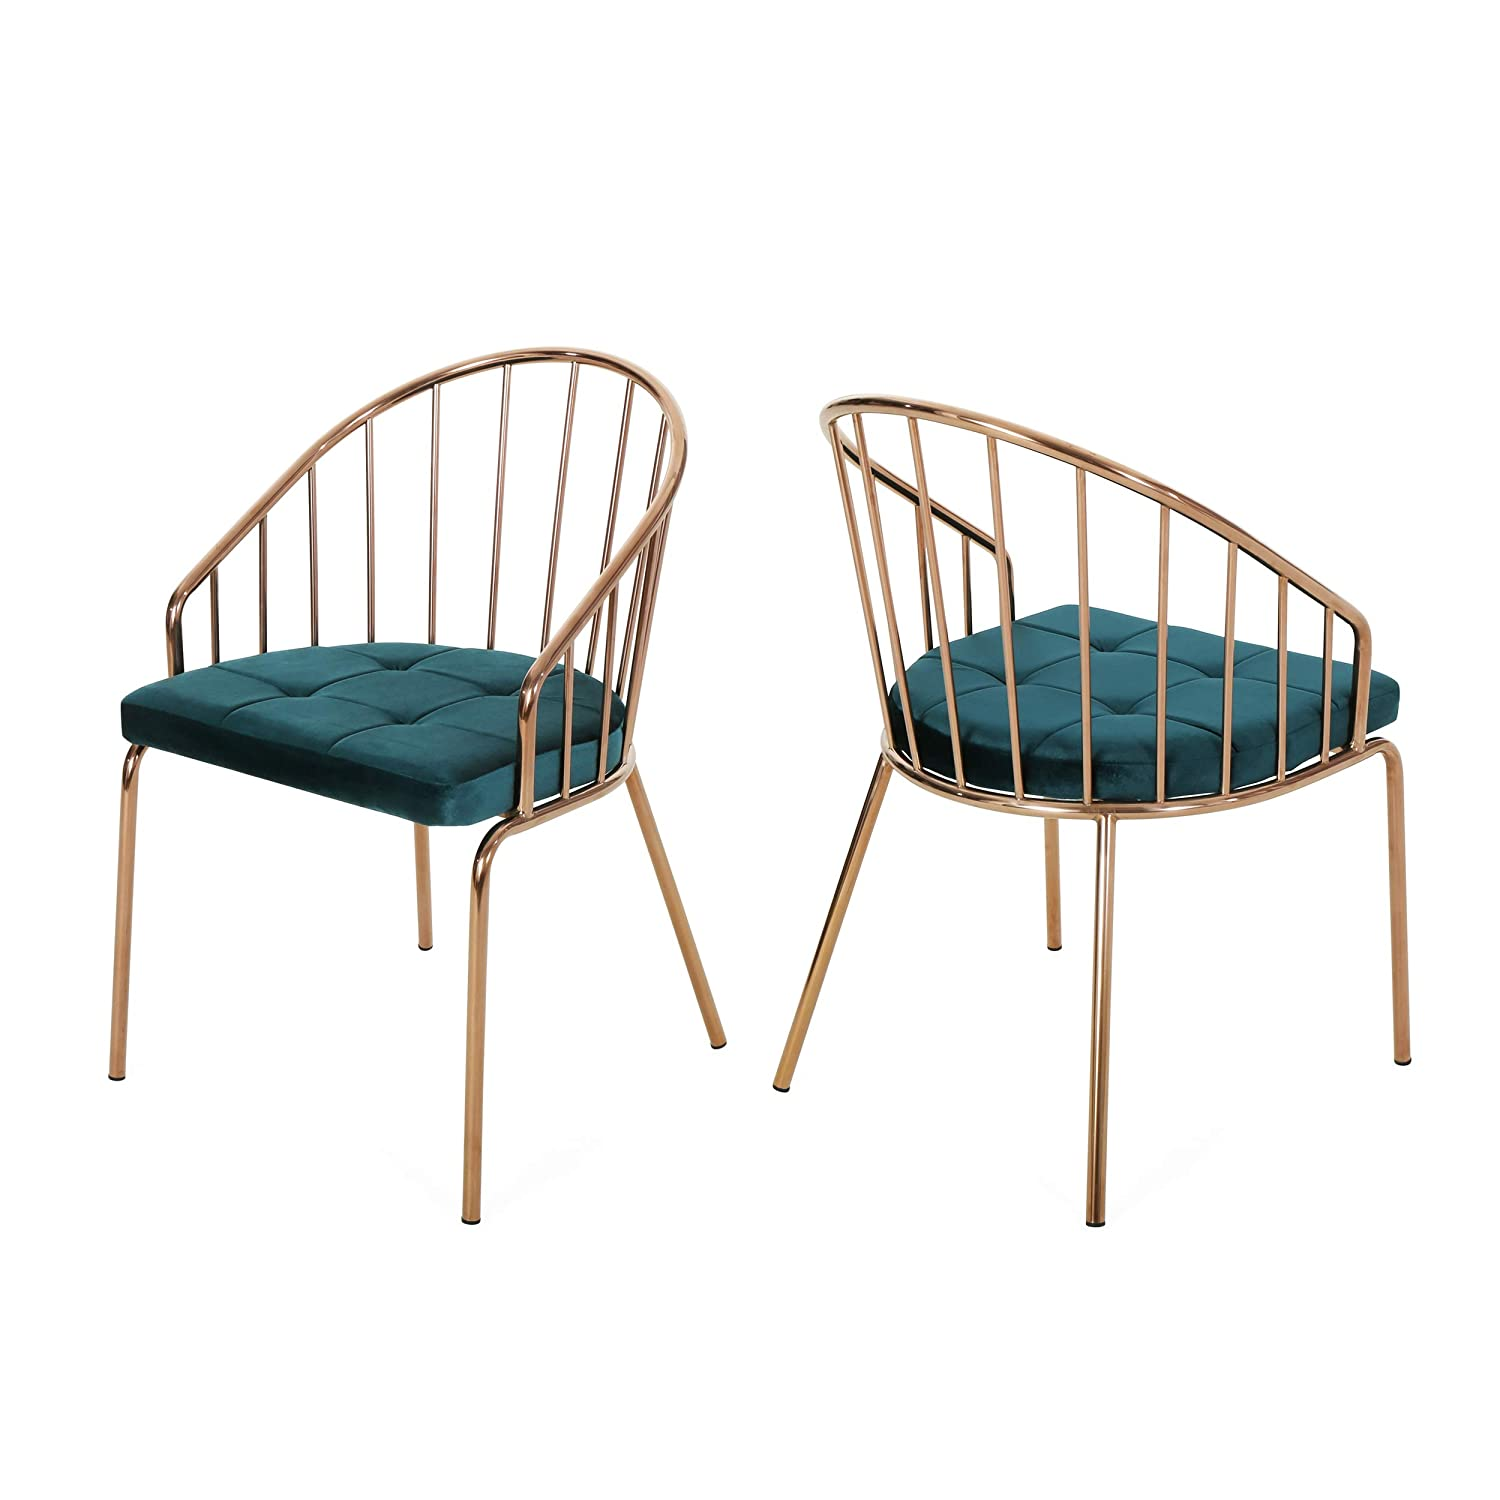 Christopher Knight Home Marcia Modern Velvet Dining Chair with Stainless Steel Frame (Set or 2), Teal and Rose Gold